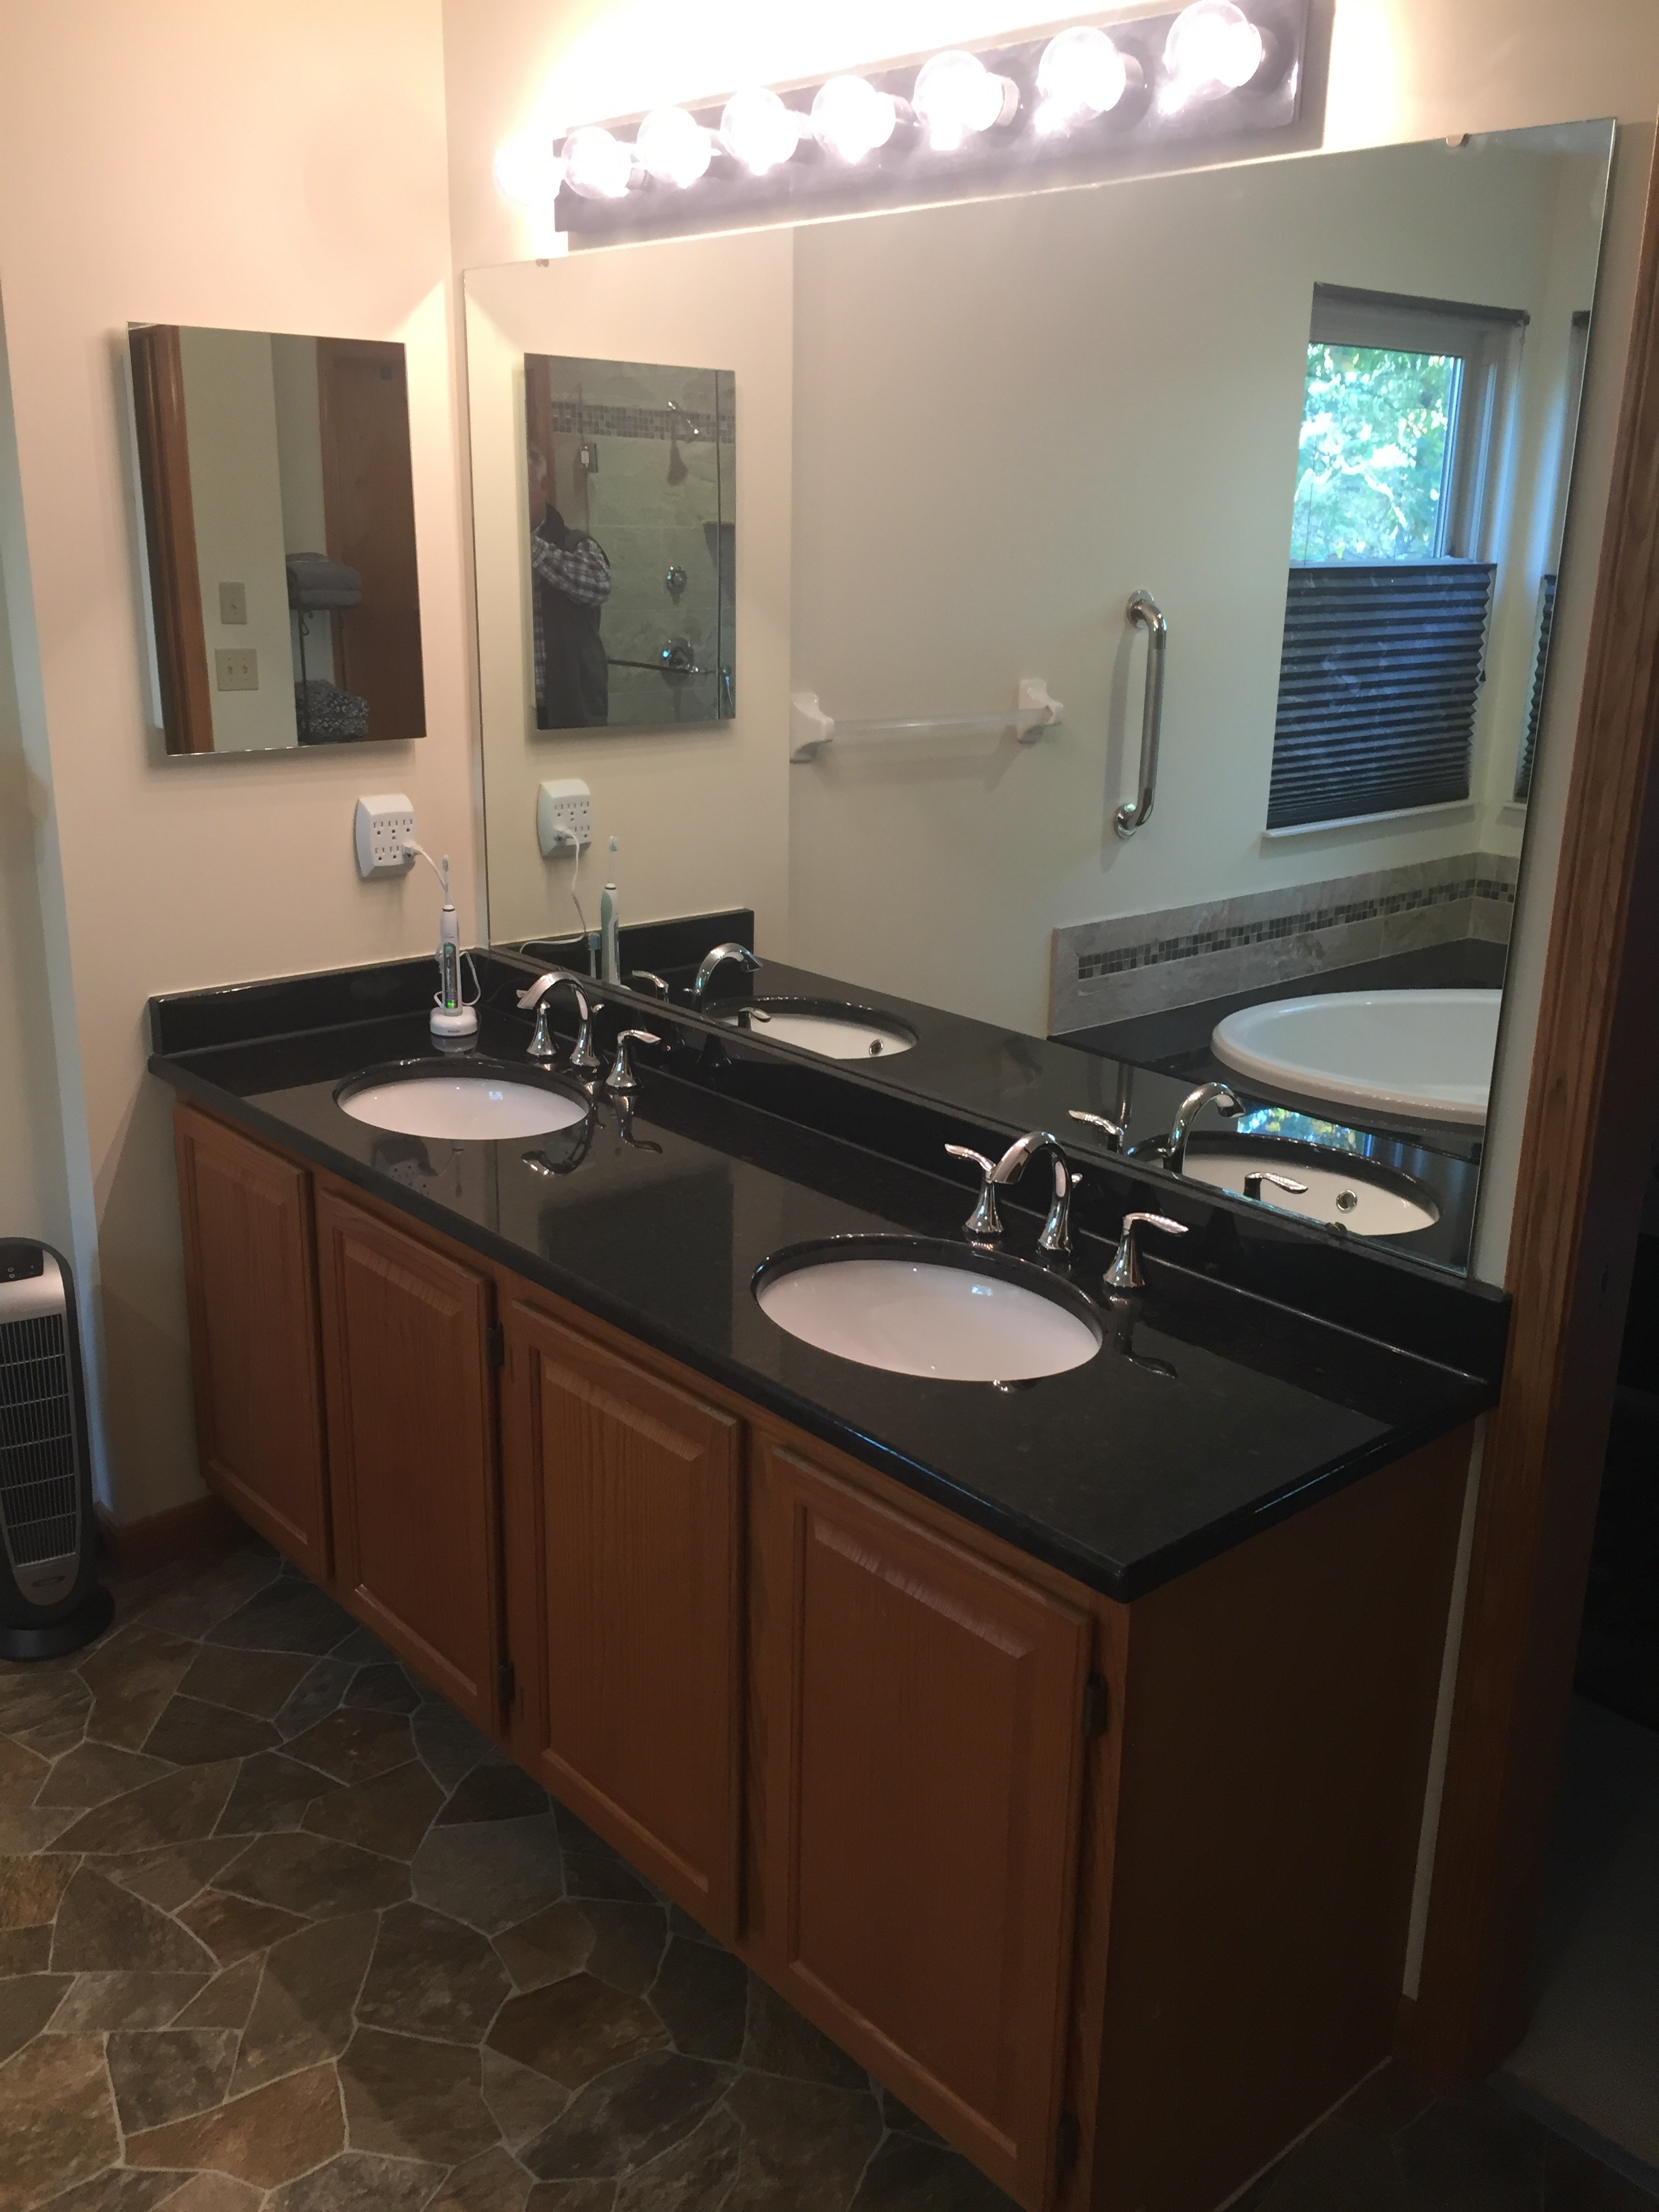 3 Reasons To Trust A Professional For Bathroom Remodeling